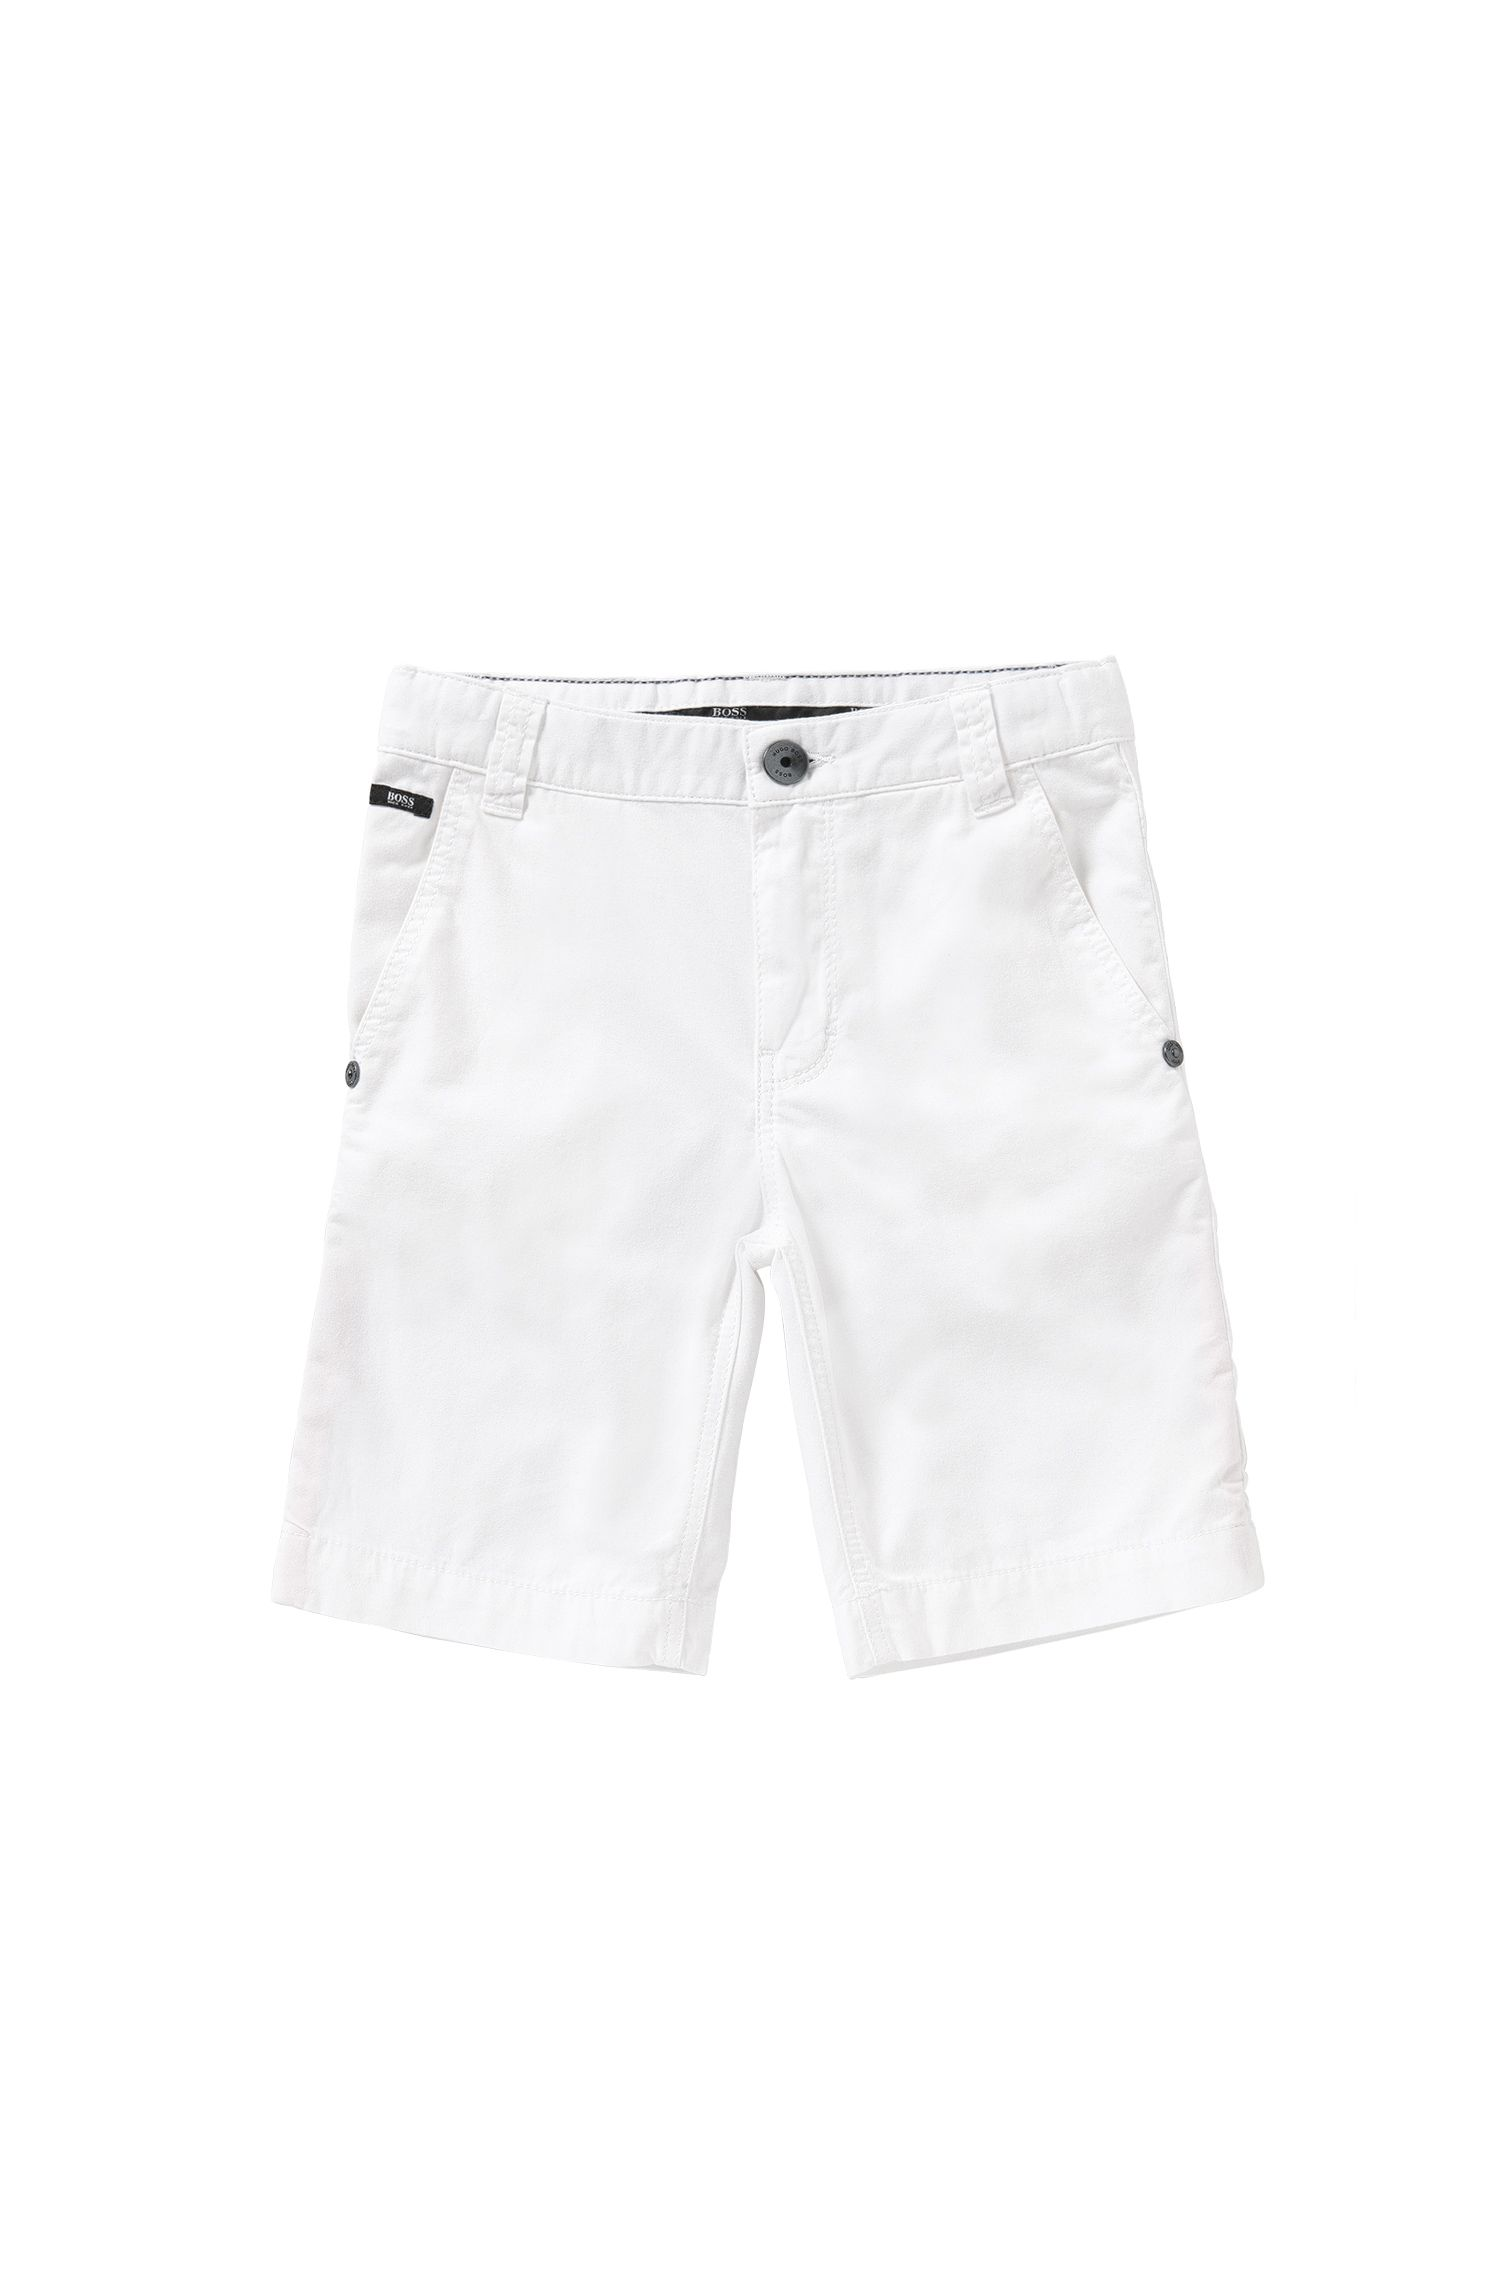 Shorts regular fit en algodón puro para niño: 'J24386'